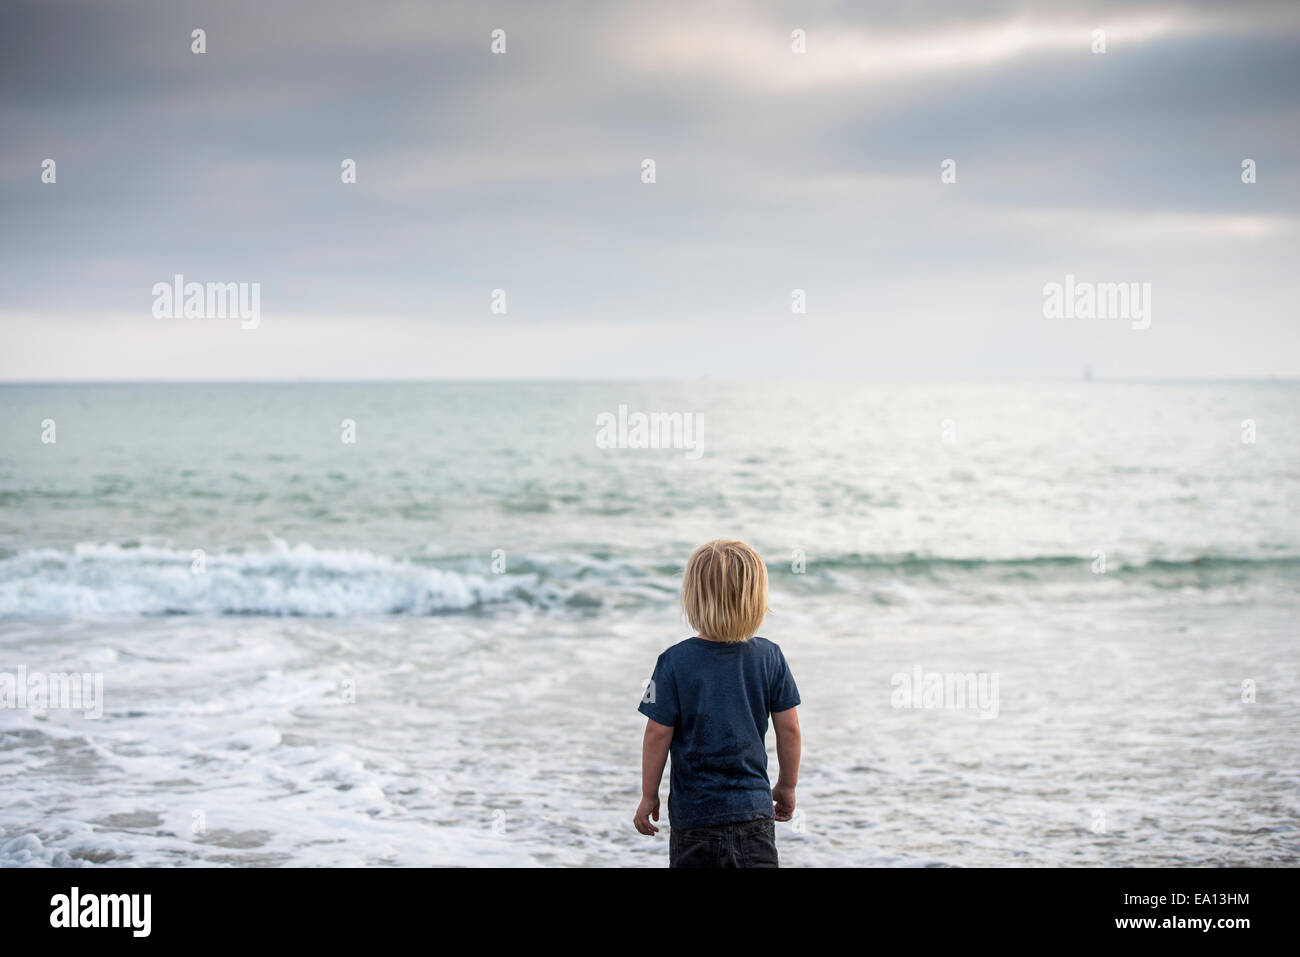 Rear view of boy gazing out to sea, Dana Point, California, USA - Stock Image